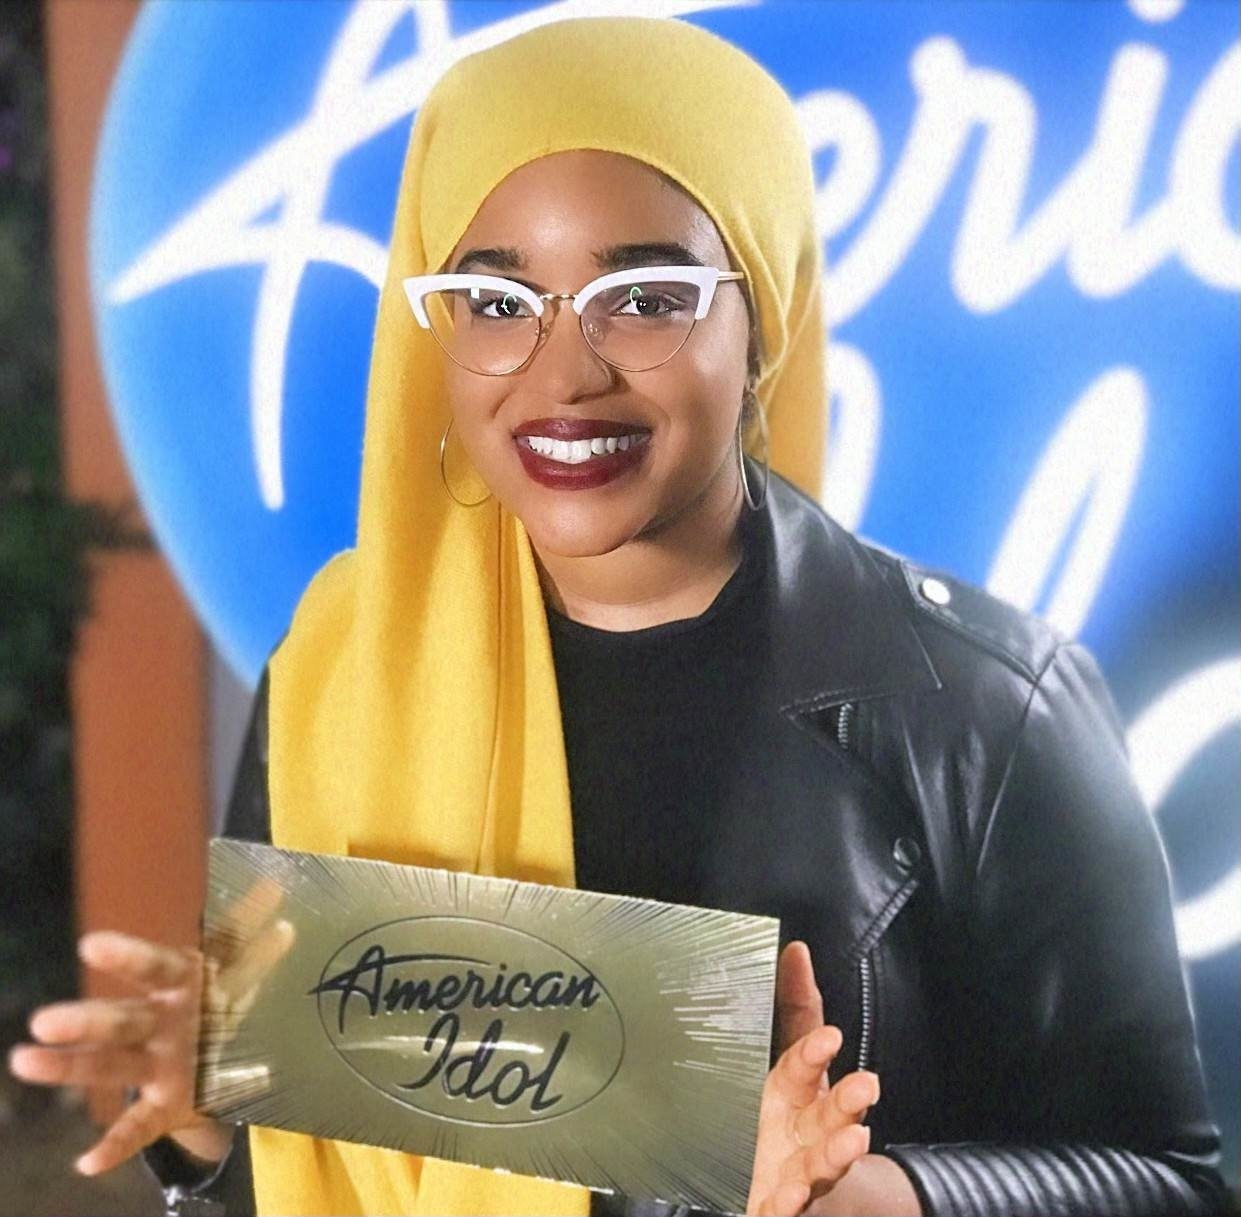 """Amira holds up a golden ticket with the """"American Idol"""" logo on it"""